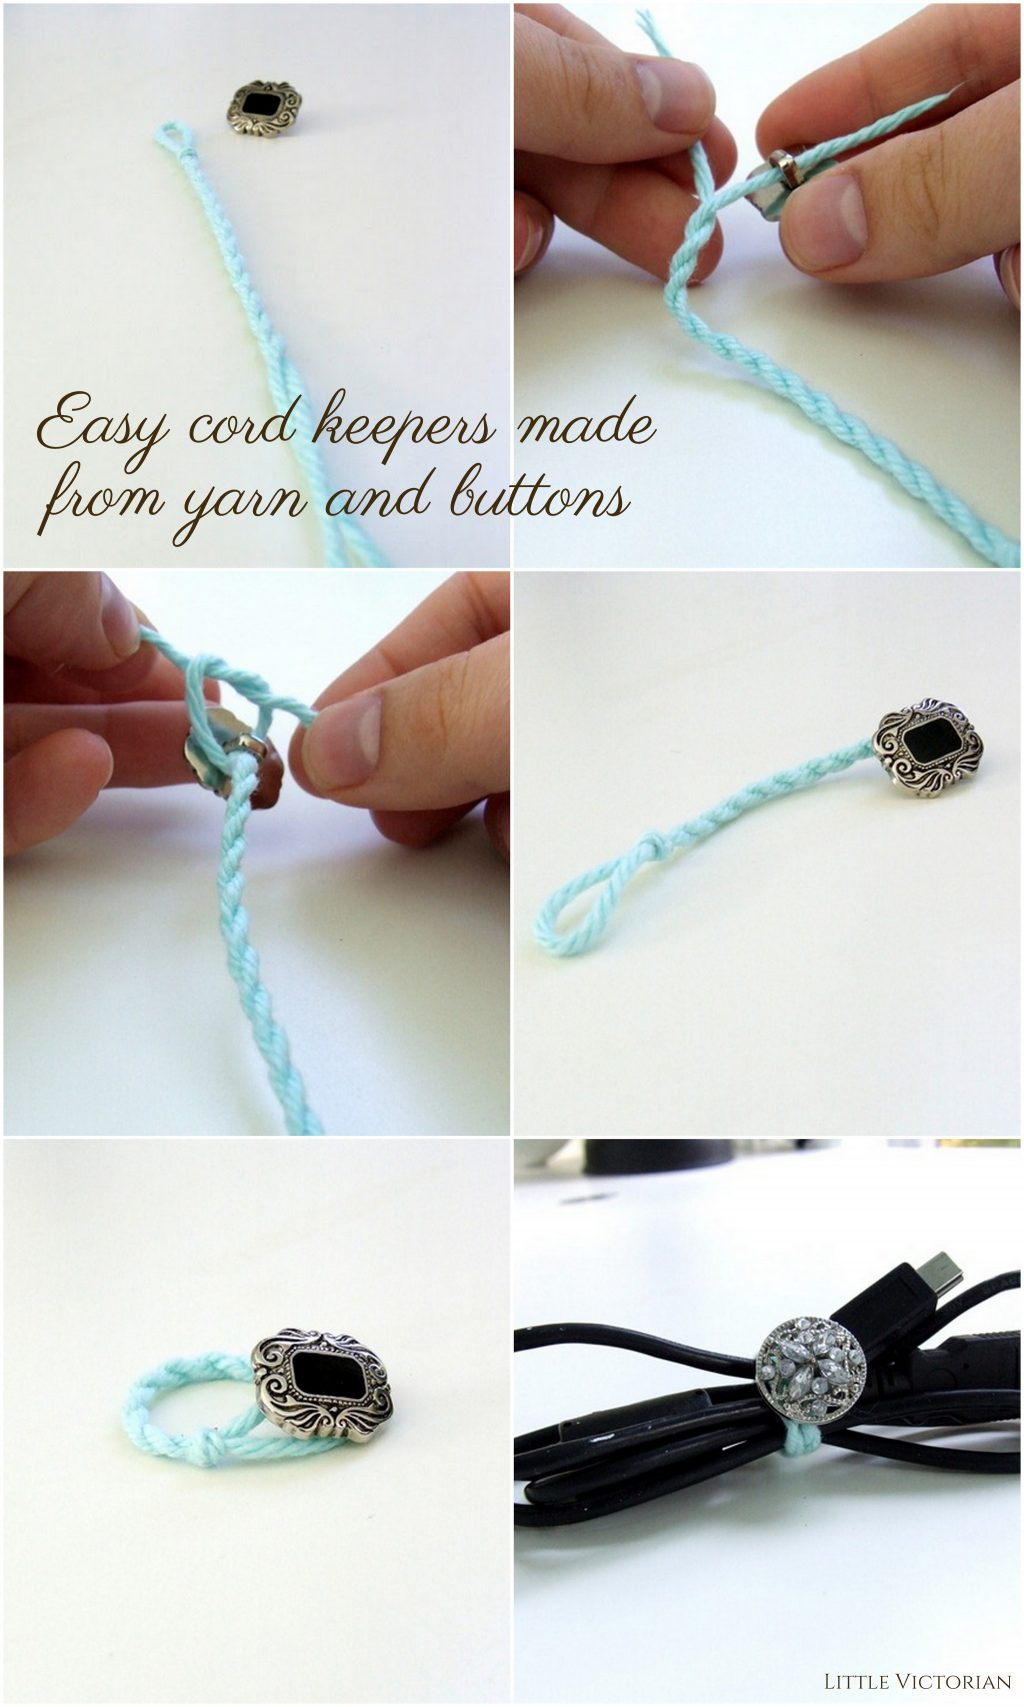 DIY cord keepers from yarn and buttons